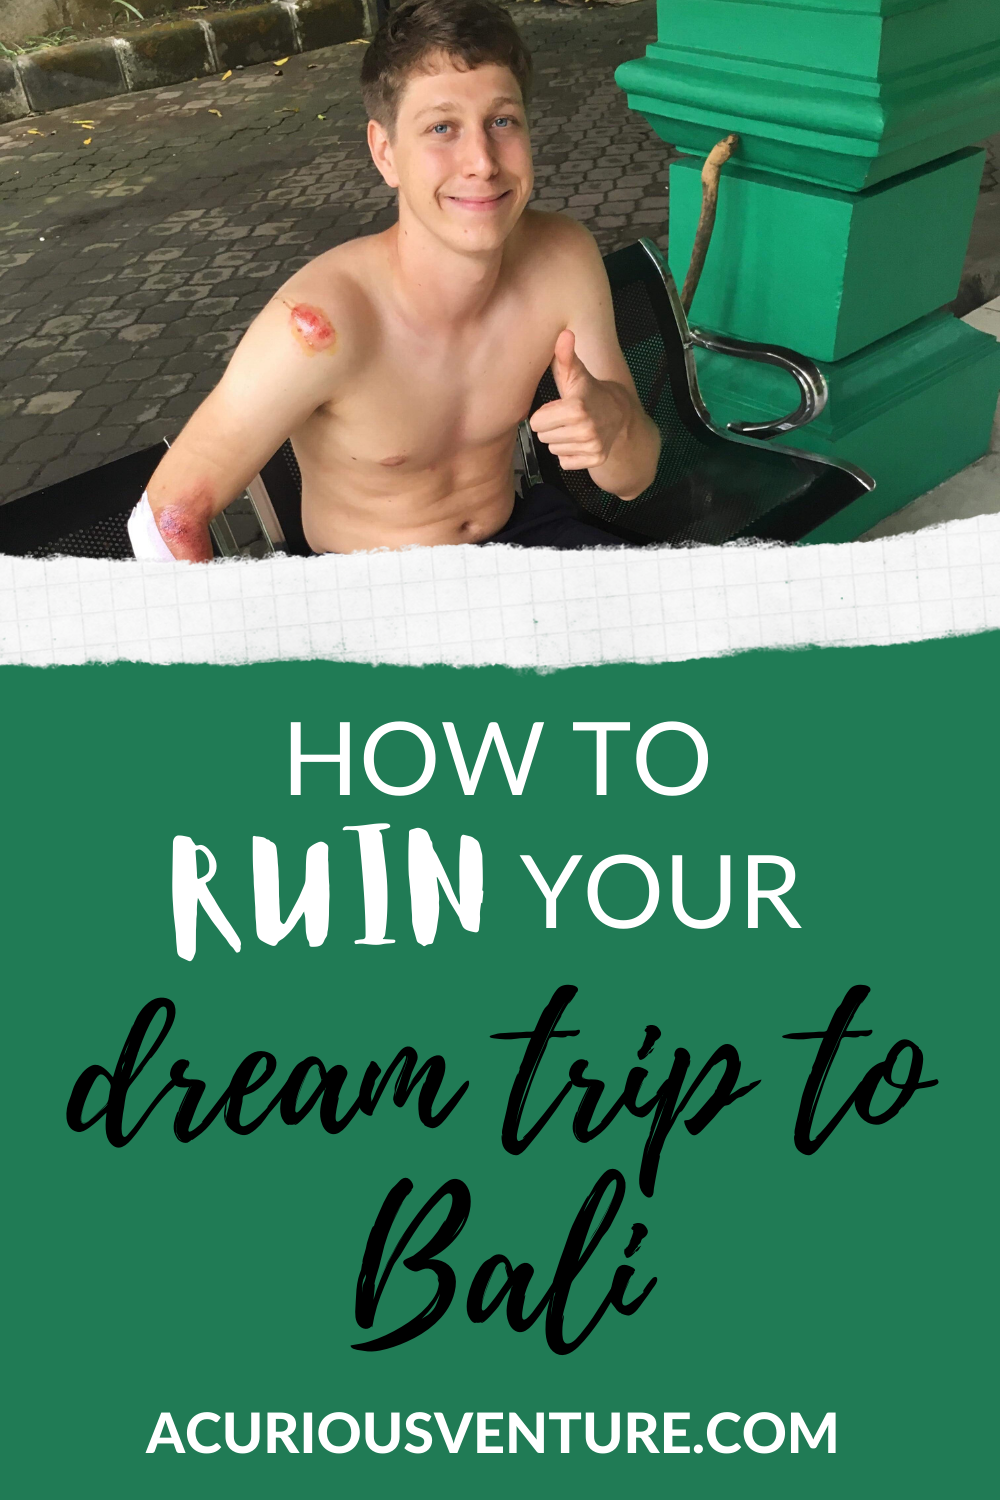 How To Ruin Your Dream Trip To Bali